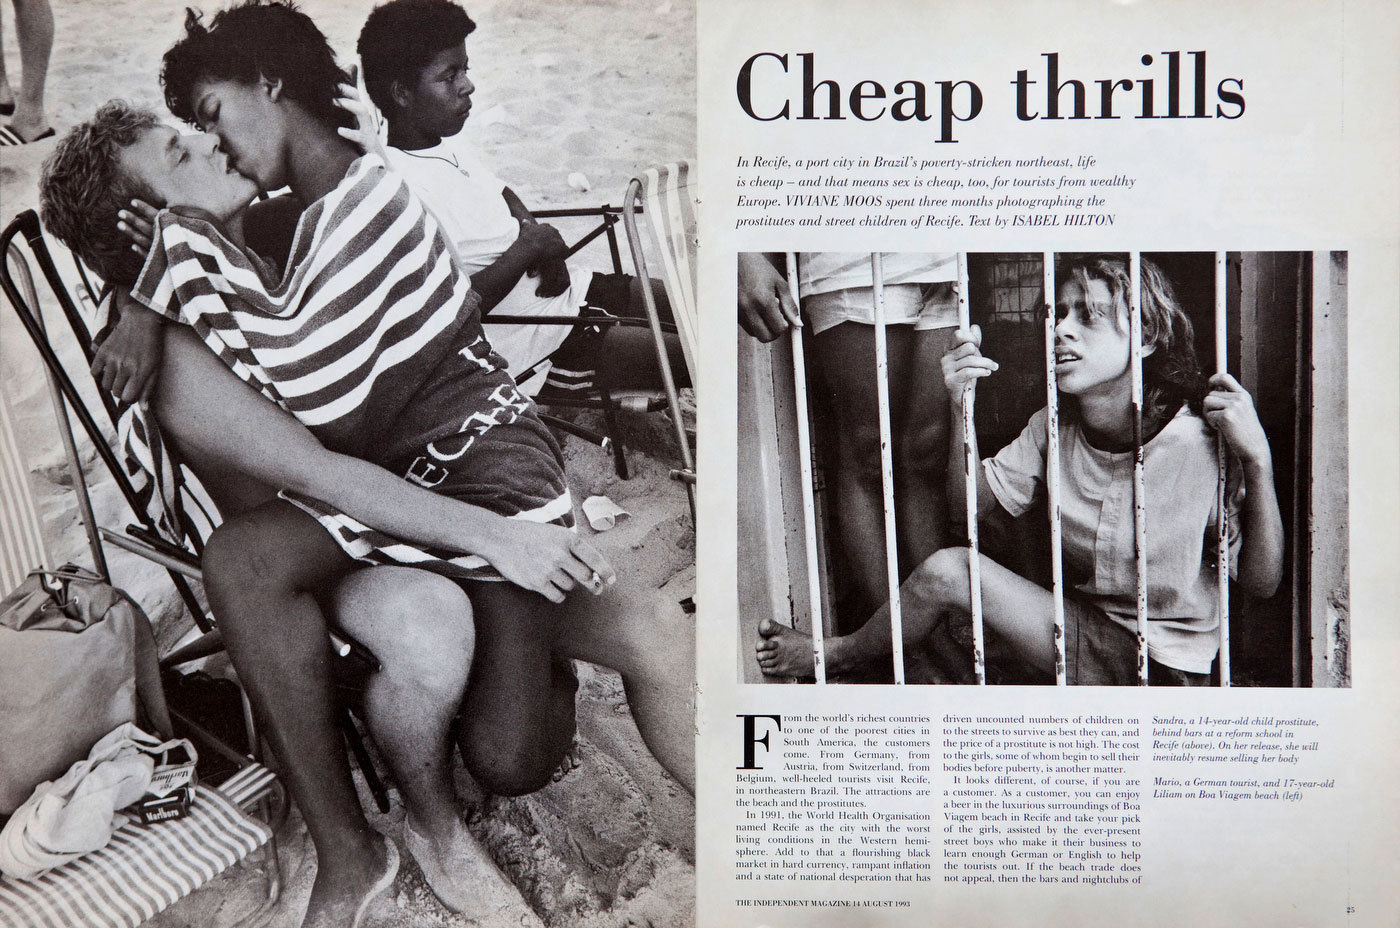 Selling Sex in Brazil. The Independent Magazine, UK. : TEAR SHEETS : Viviane Moos |  Documentary Photographer